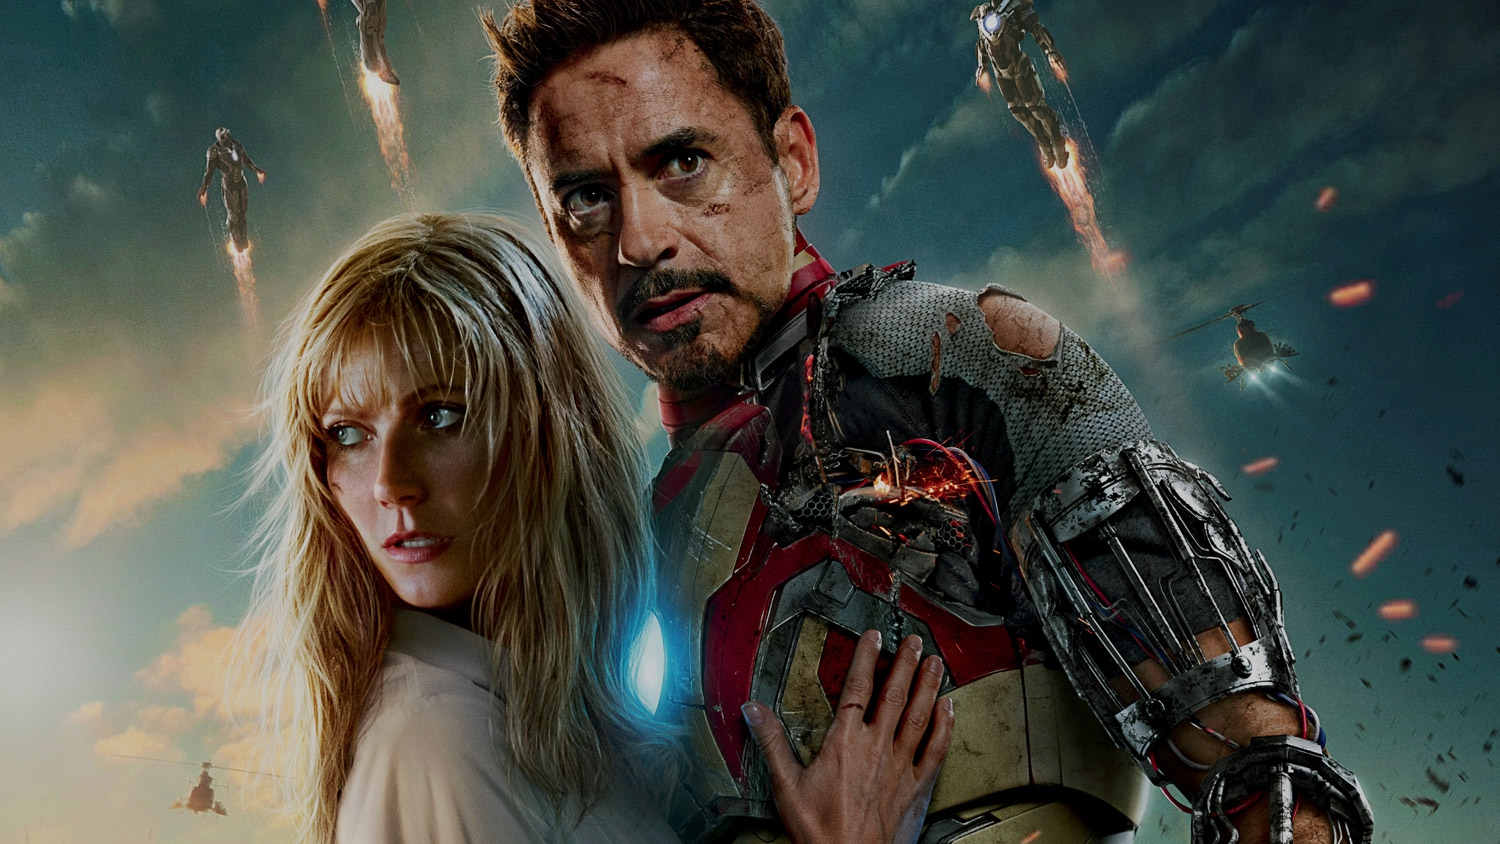 Honest Trailer for IRON MAN 3 artistic, awesome, clever, cool, crazy, funny, random, rocks, silly, sweet